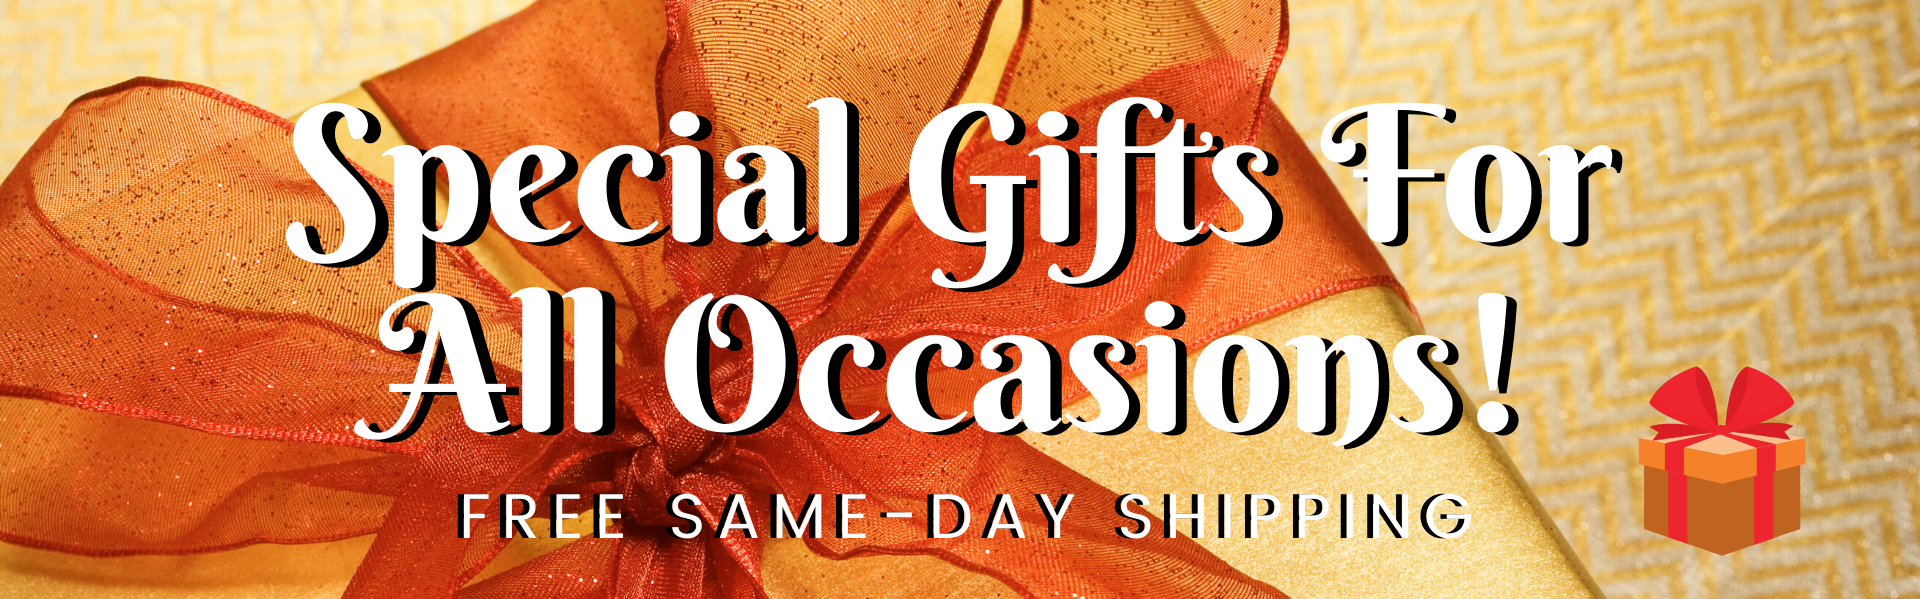 Special gifts for all occasions